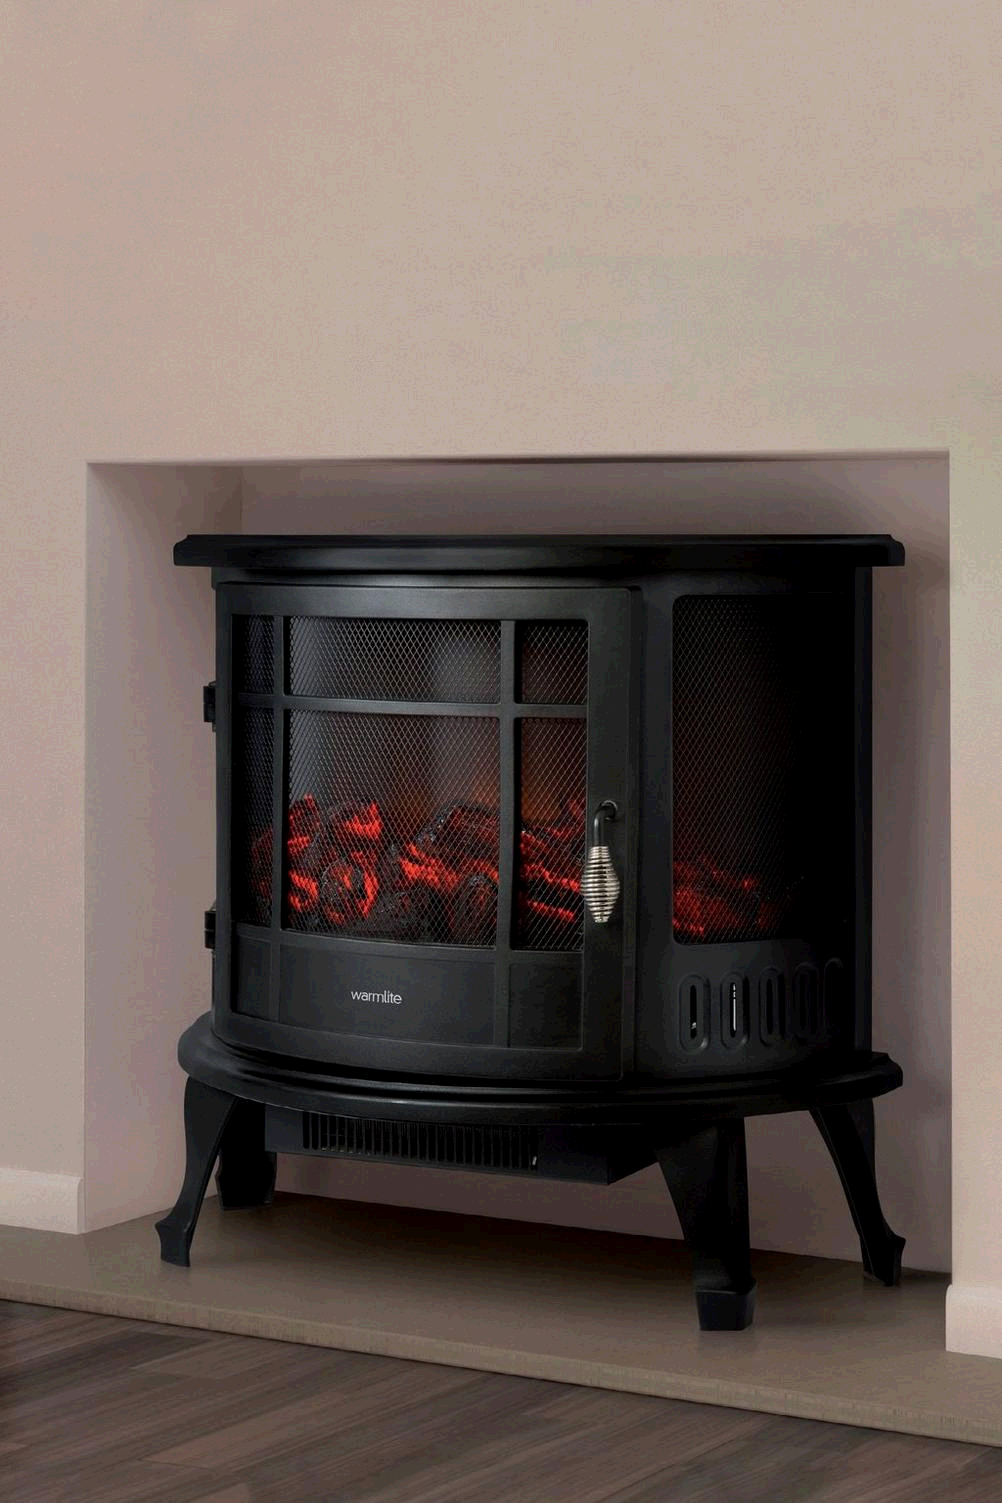 Warmlite WL46017 1800W Log Effect Curved Stove Fire